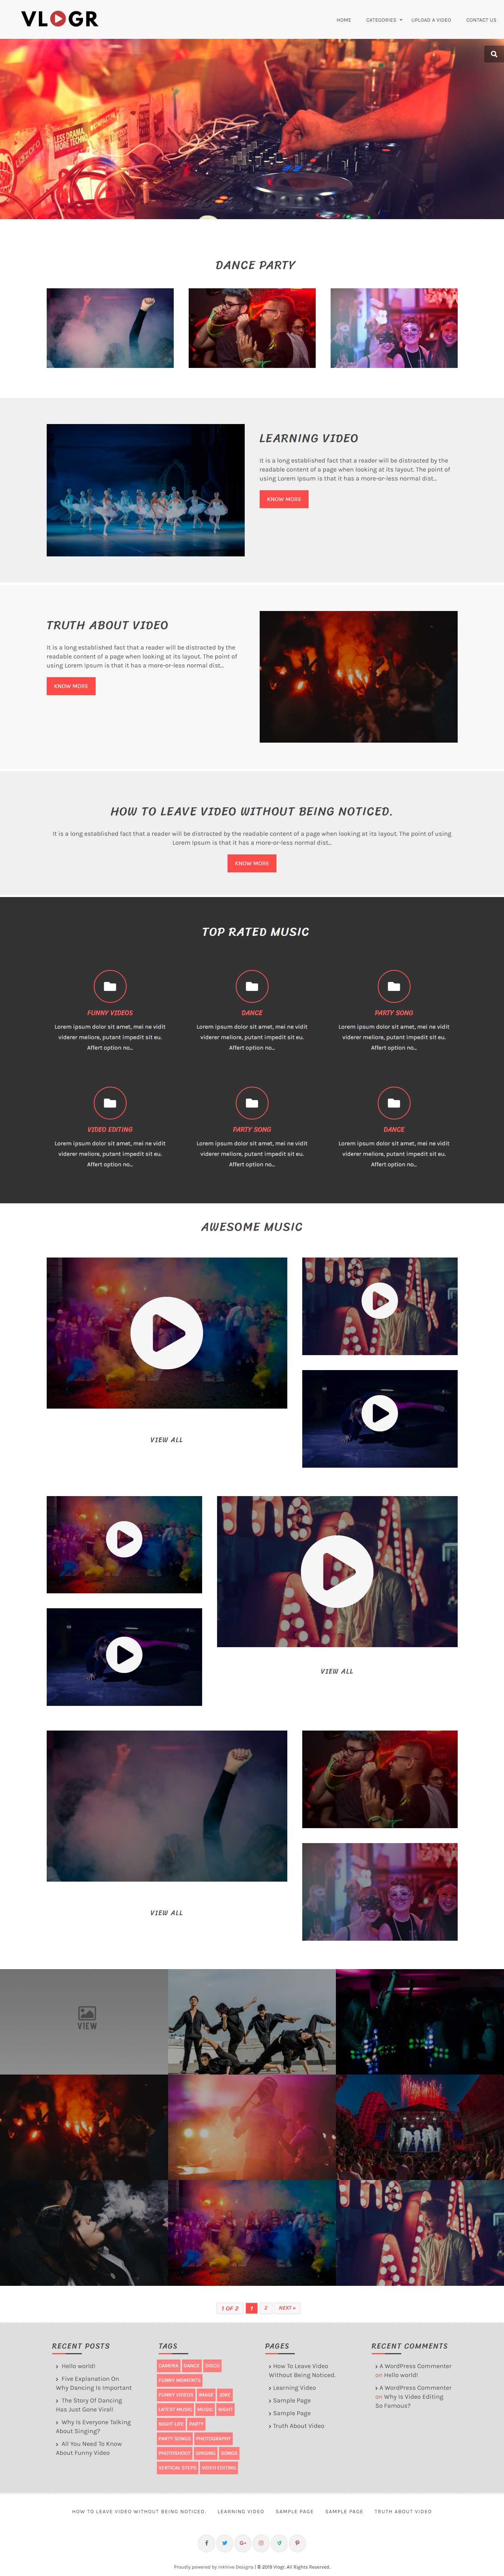 Vlogr - Best Free Video and Music WordPress Theme